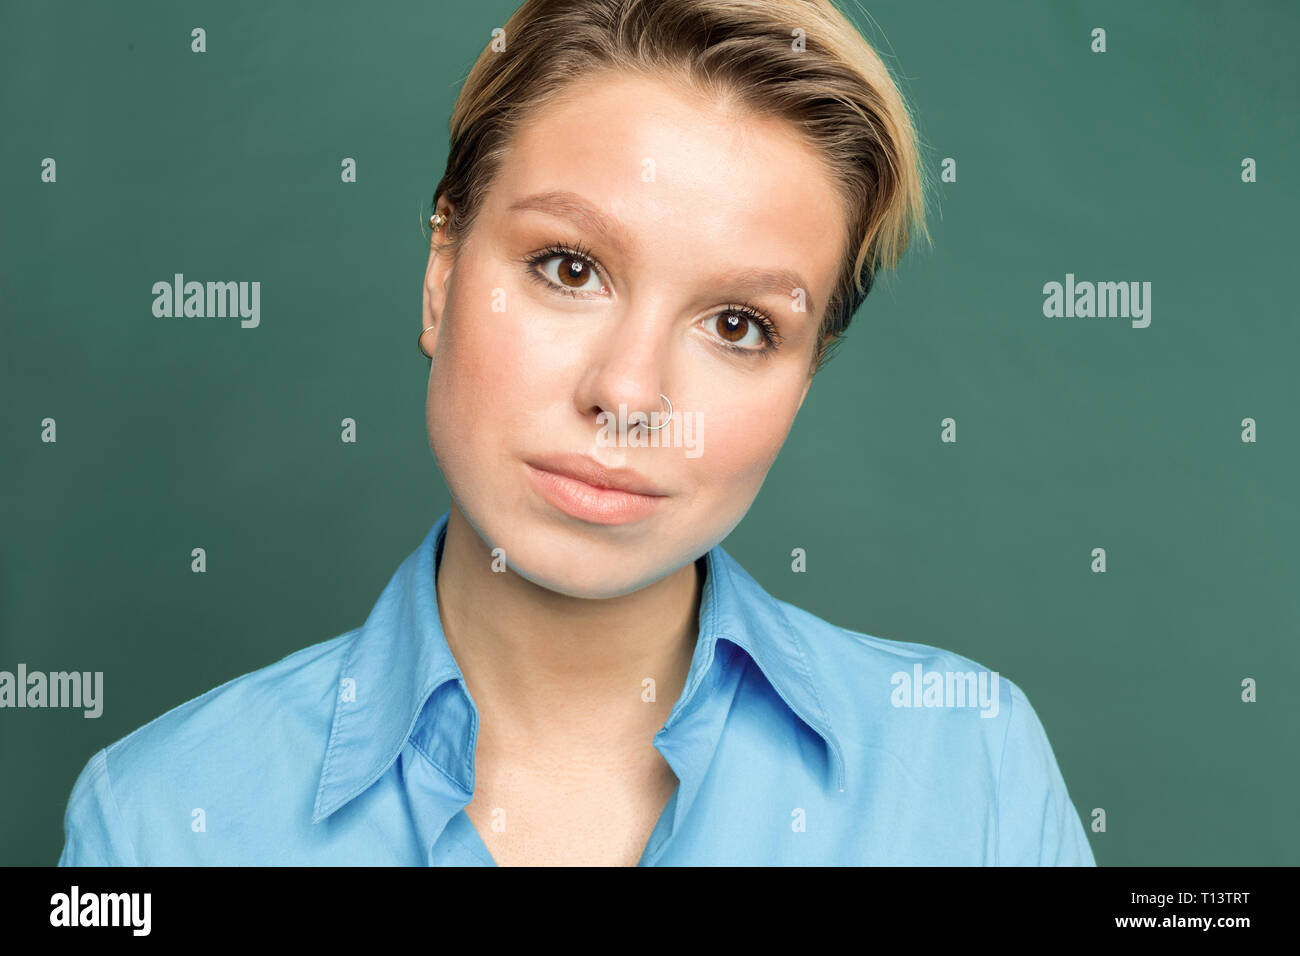 Portrait of young woman with nose piercing in front of green background - Stock Image